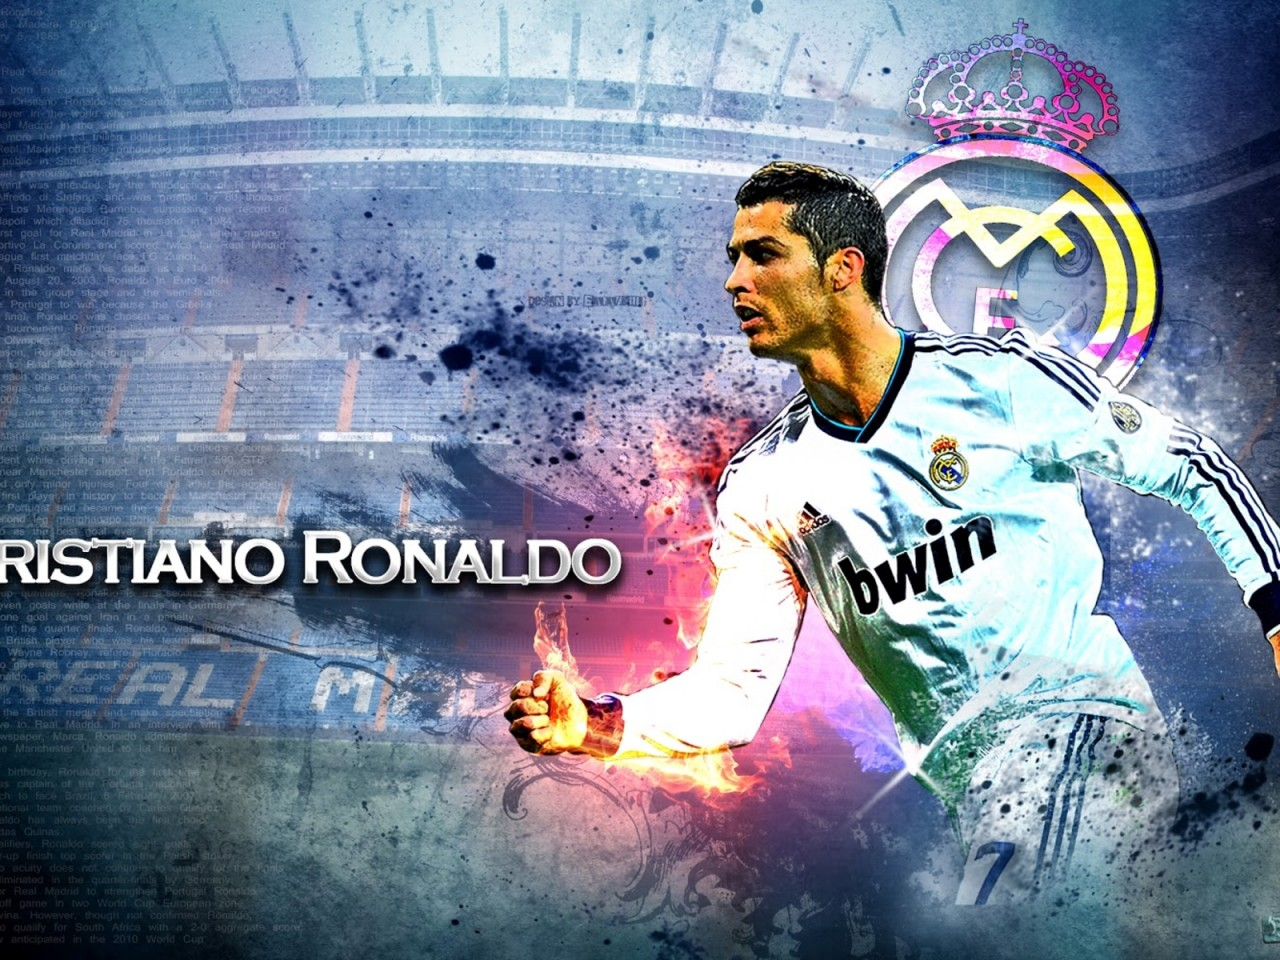 Cristiano Ronaldo Hd Wallpaper Hd Wallpapers